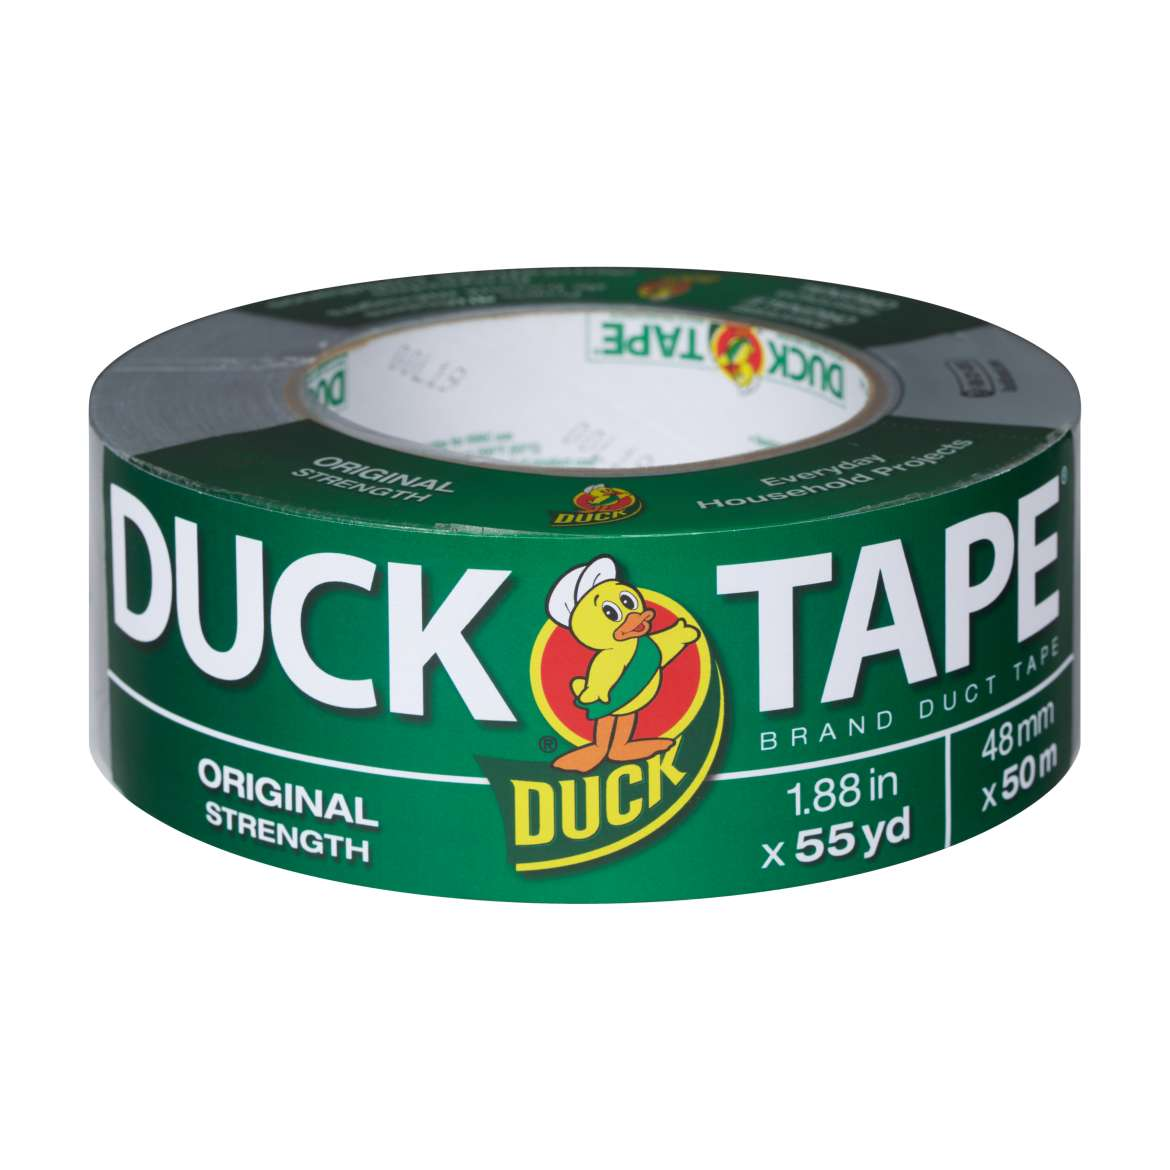 Duck Brand Original Strength Duct Tape, 1.88 in. x 55 yds., Silver